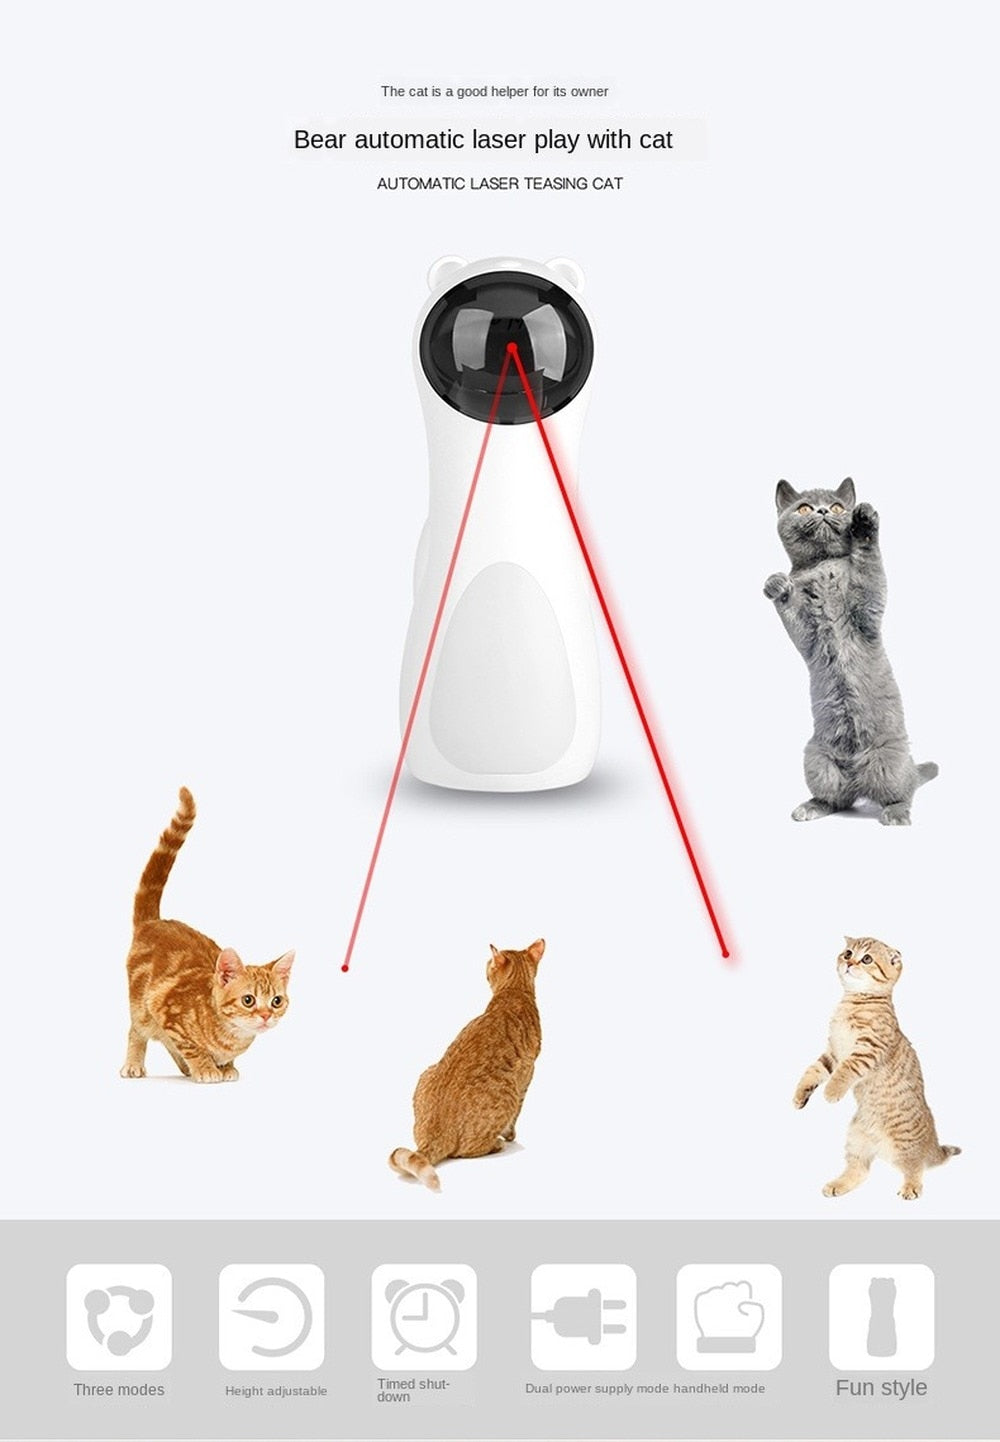 Bear Laser Play with Cat Automatic Laser Play with Cat Toy Led Red Laser Cat Toy